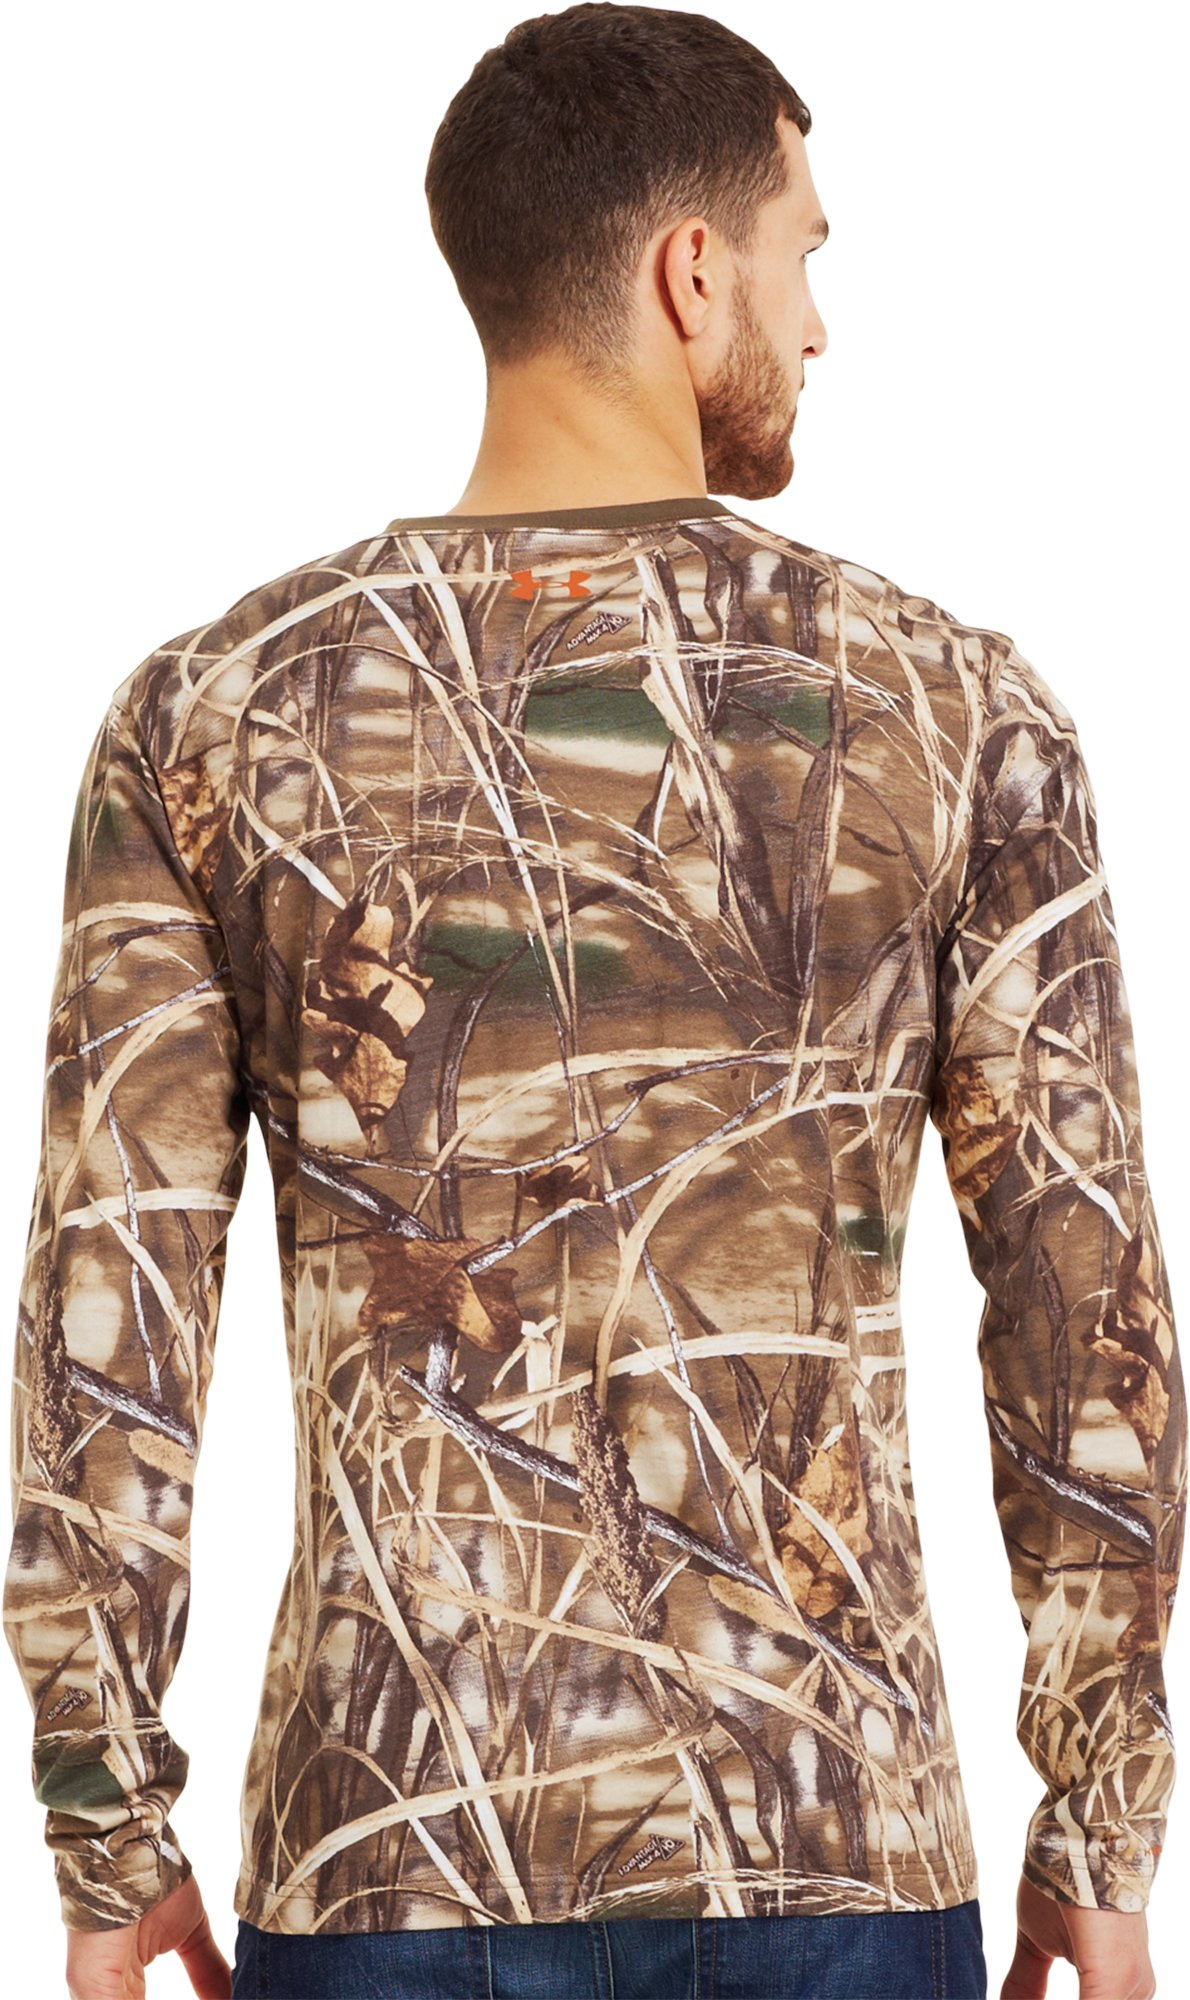 Men's Charged Cotton® Camo Long Sleeve T-Shirt, Realtree Max, Back